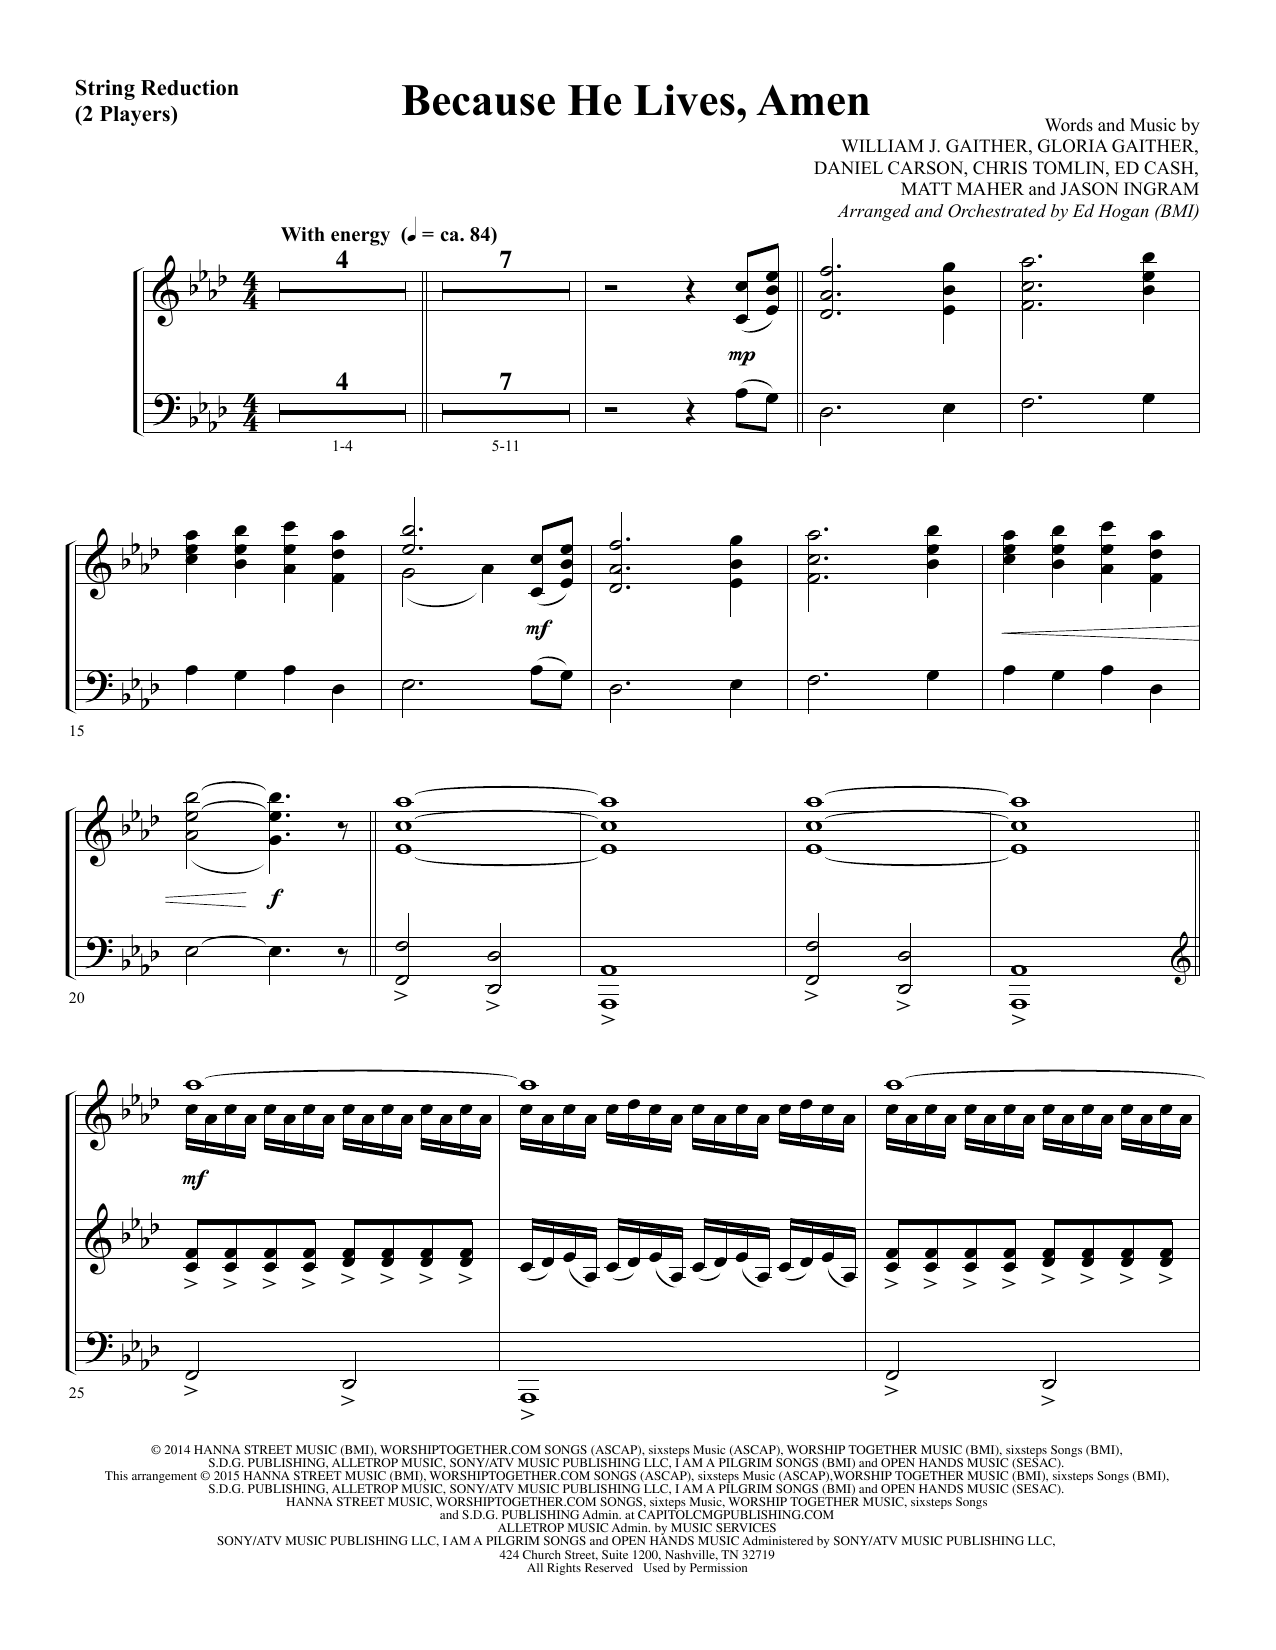 Because He Lives, Amen - Keyboard String Reduction Sheet Music